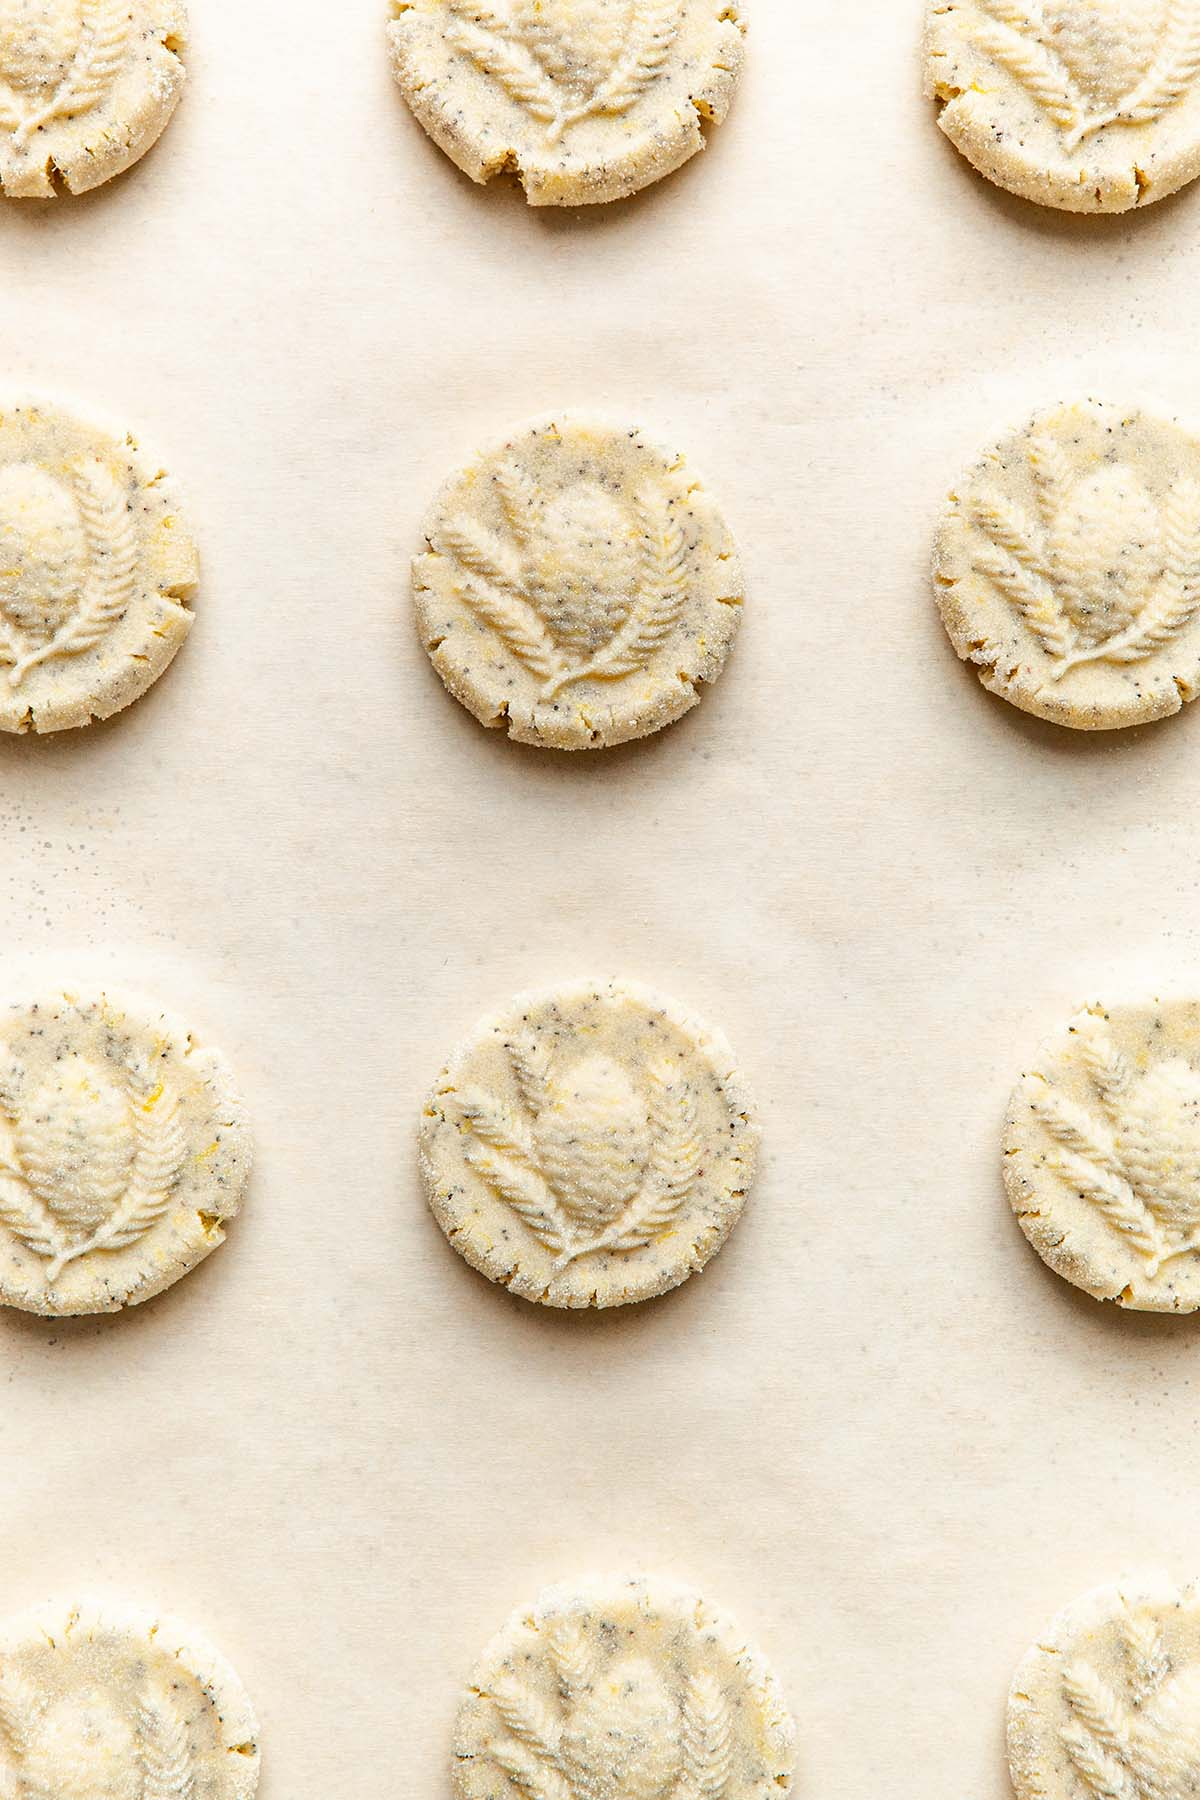 Unbaked cookies on a baking sheet lined with parchment paper.